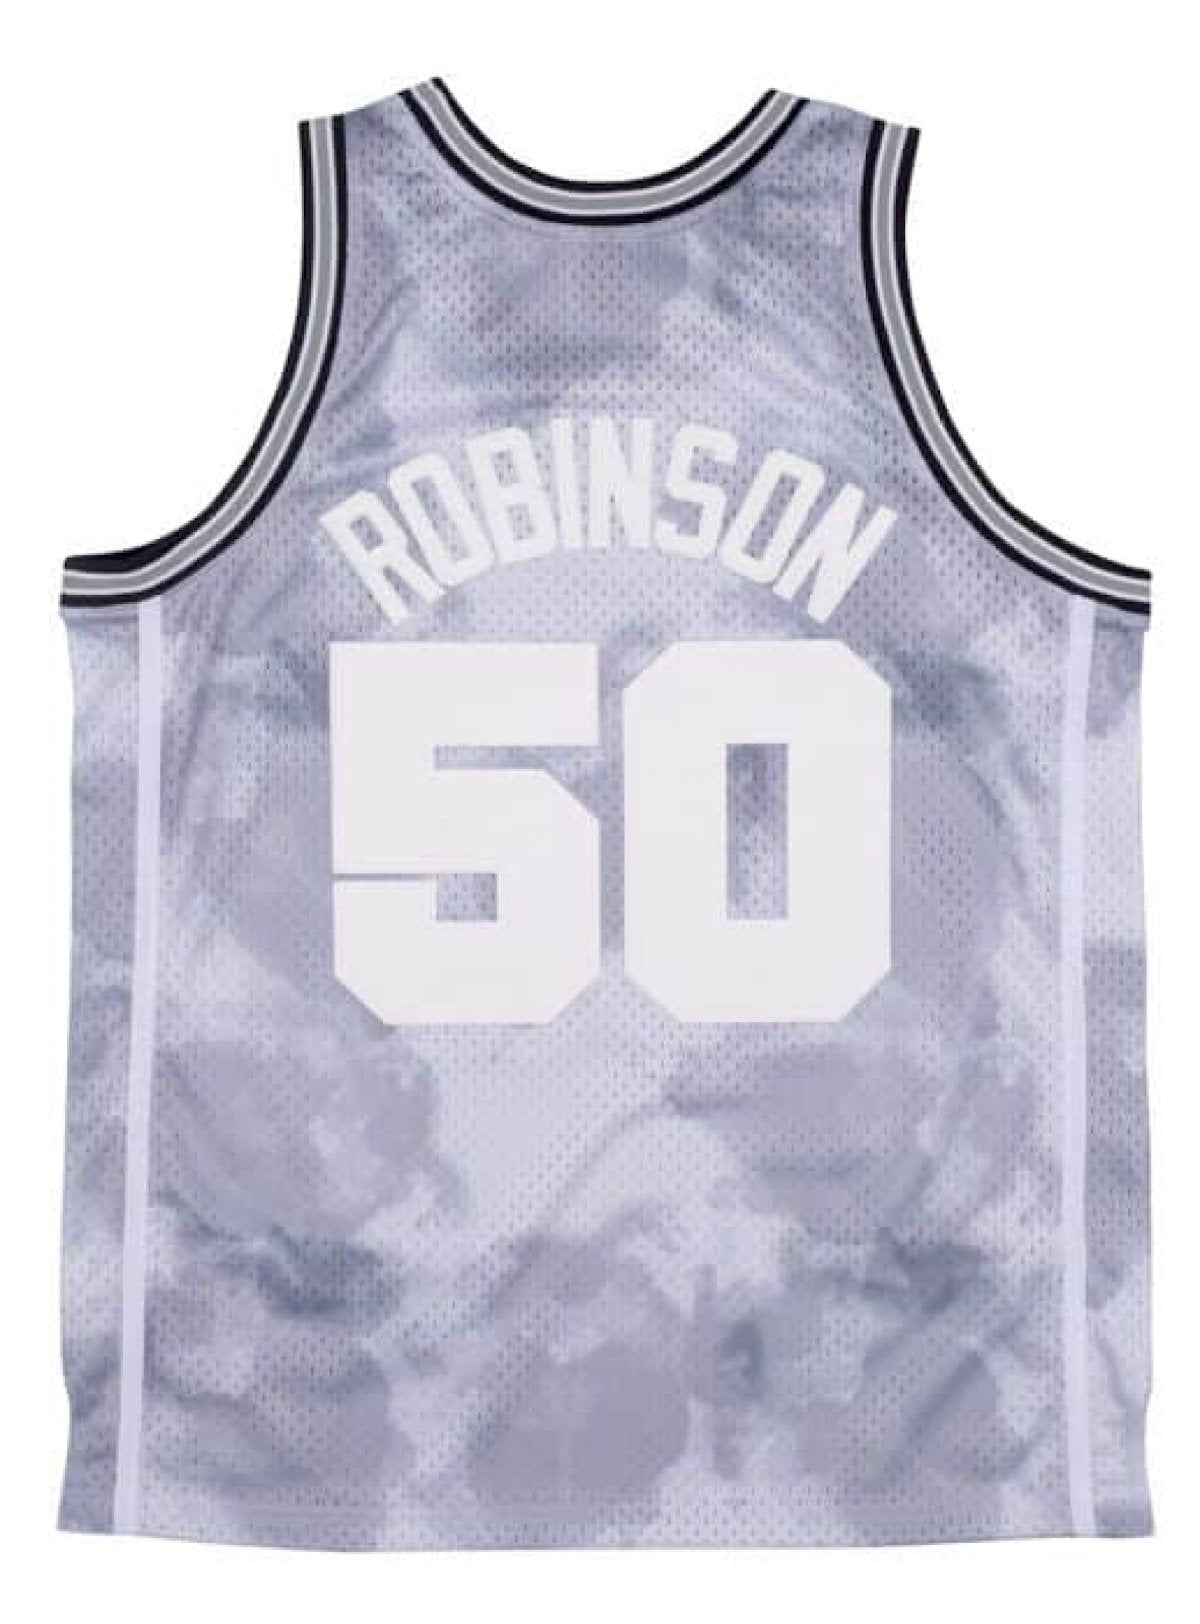 Mitchell & Ness Jersey - Spurs 98 - Cloudy Skies Grey